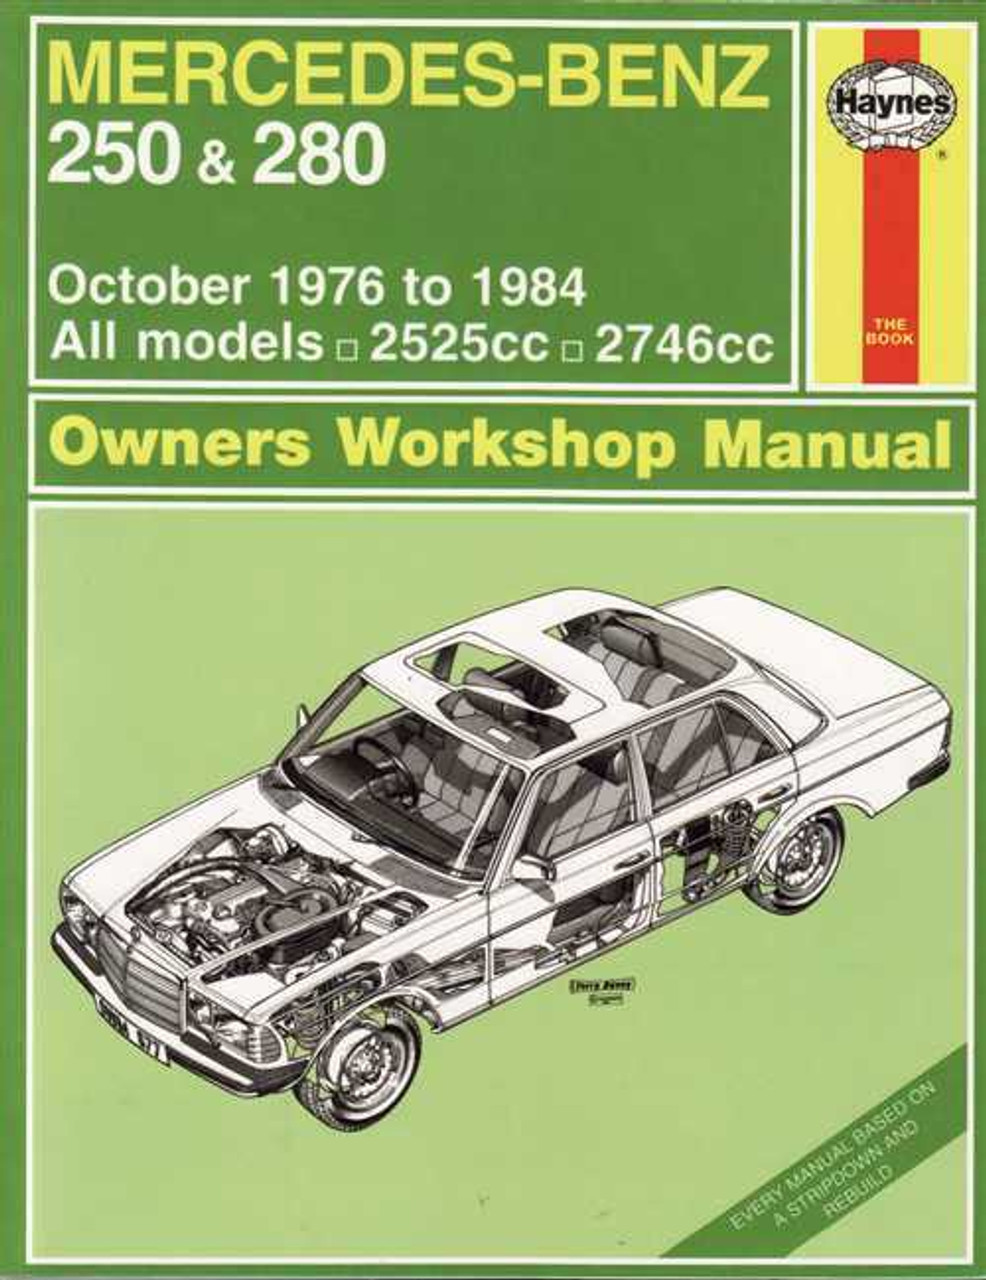 mercedes benz 250 amp 280 1976 1984 workshop manual rh automotobookshop com au IRC Section 280E Garage Door Opener Manuals